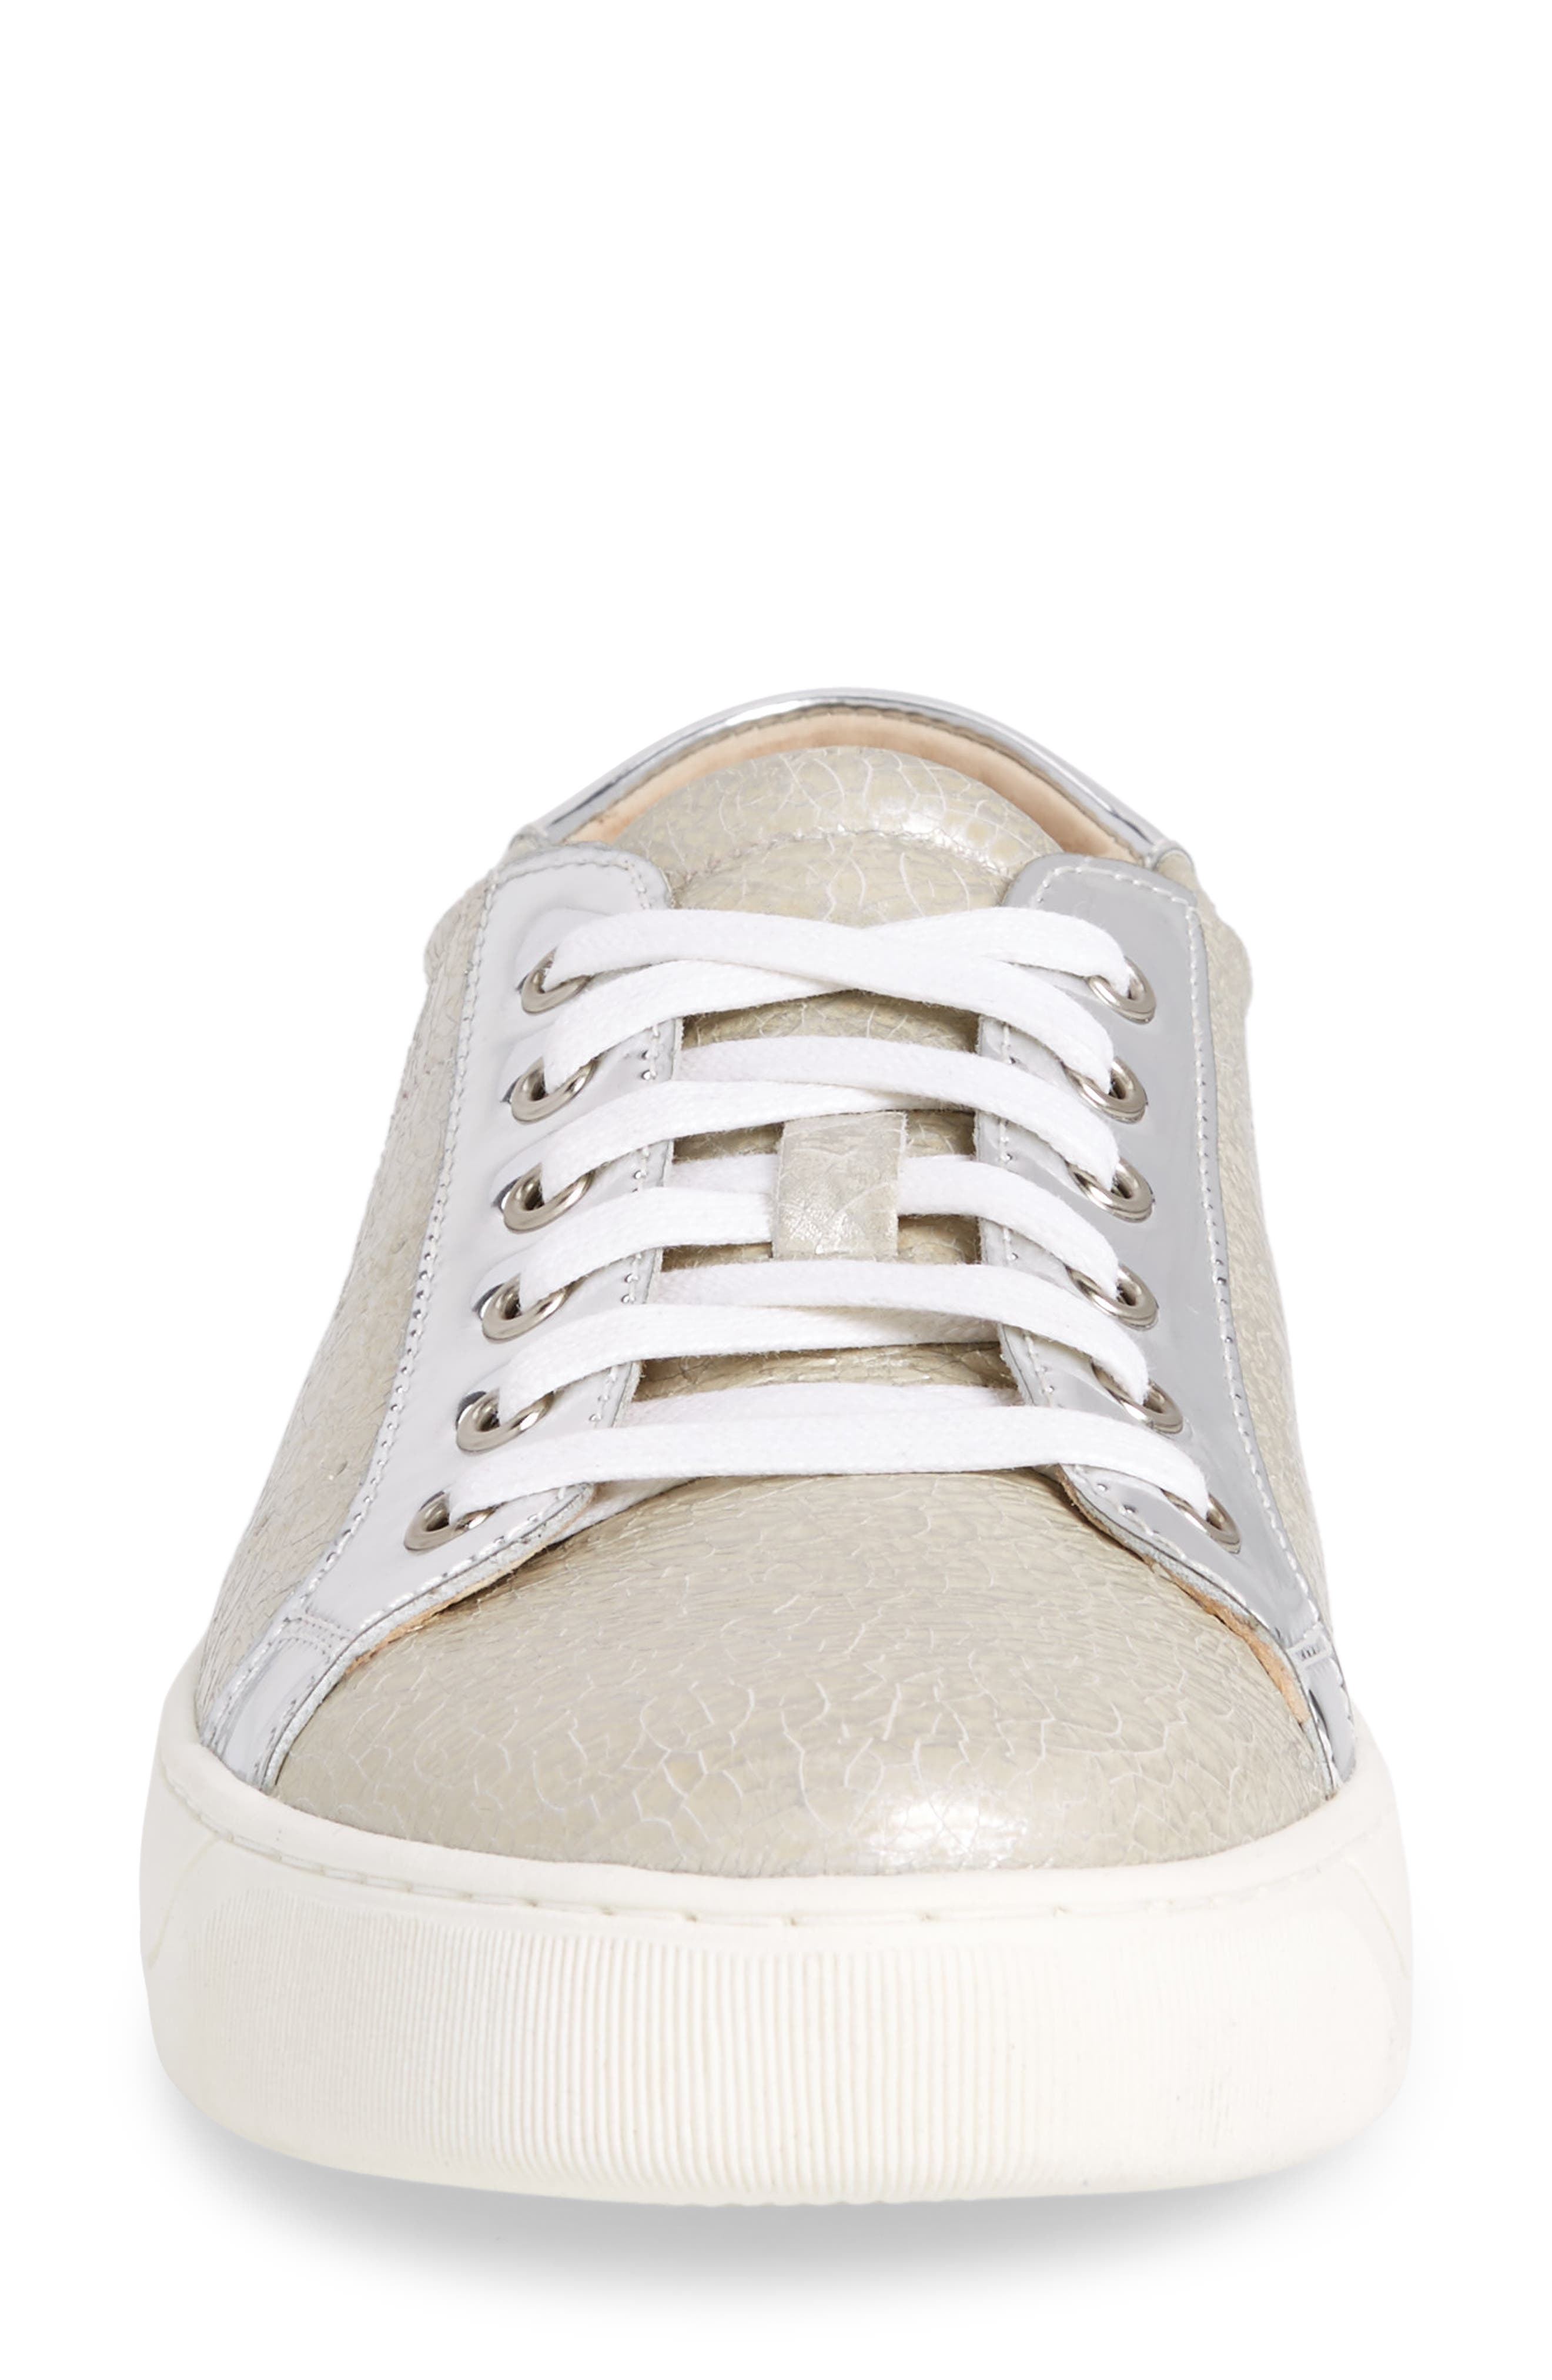 'Emerson' Sneaker,                             Alternate thumbnail 4, color,                             Ice Crackle Leather